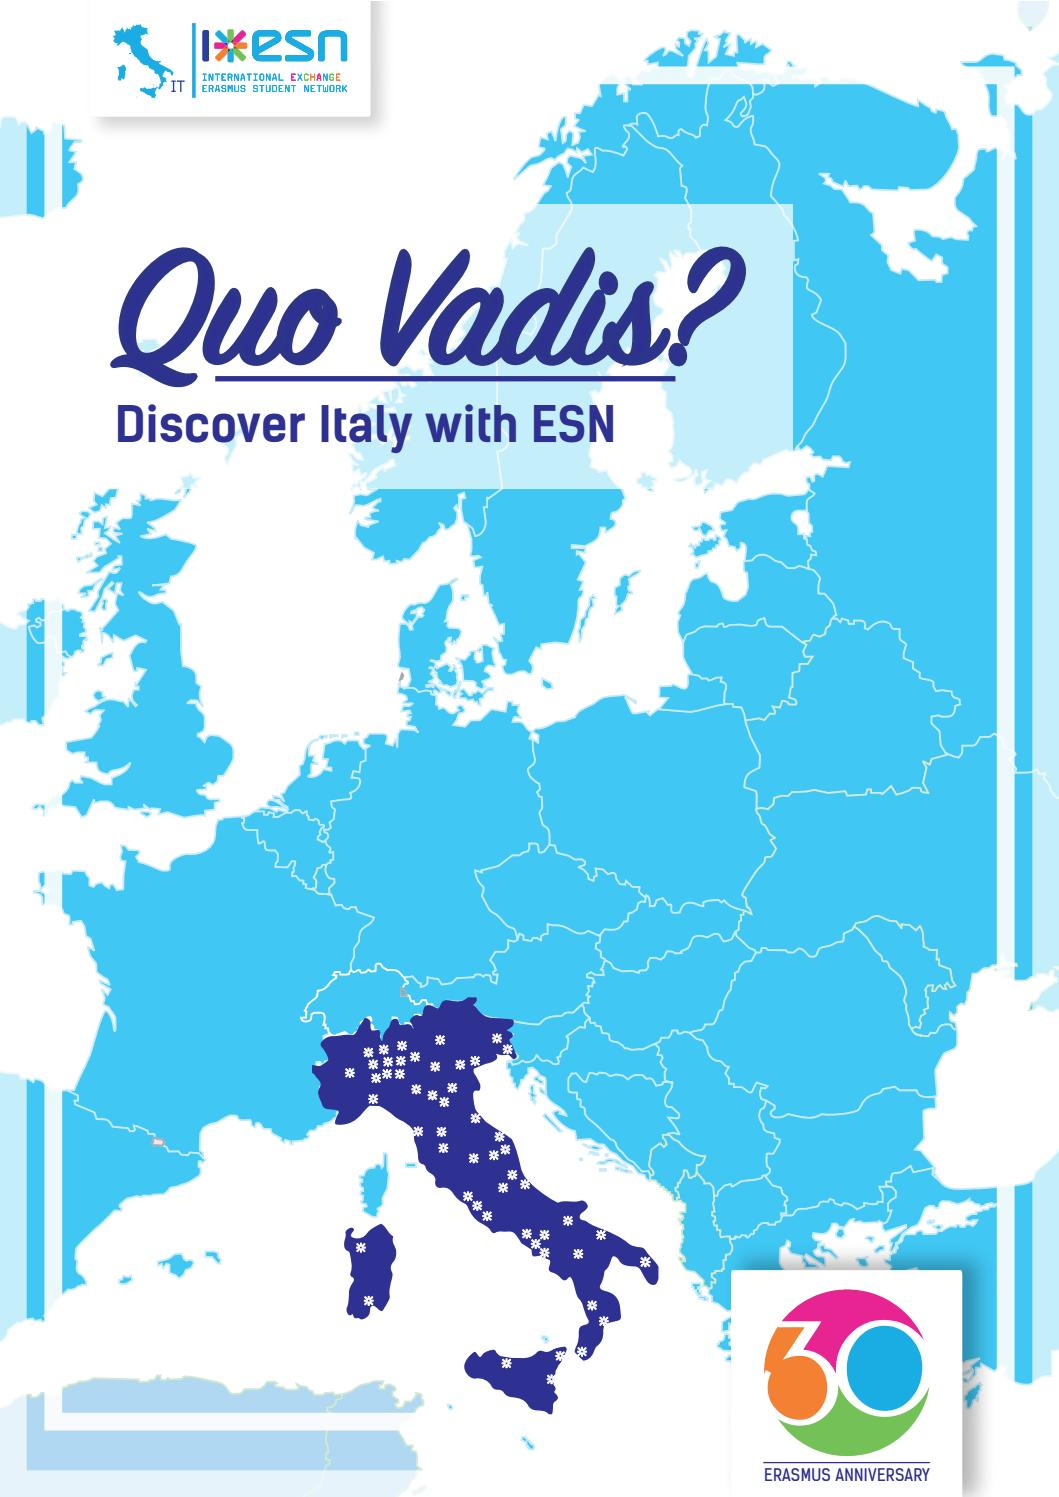 QUO VADIS? - Discover Italy with ESN by ESN Italia - issuu